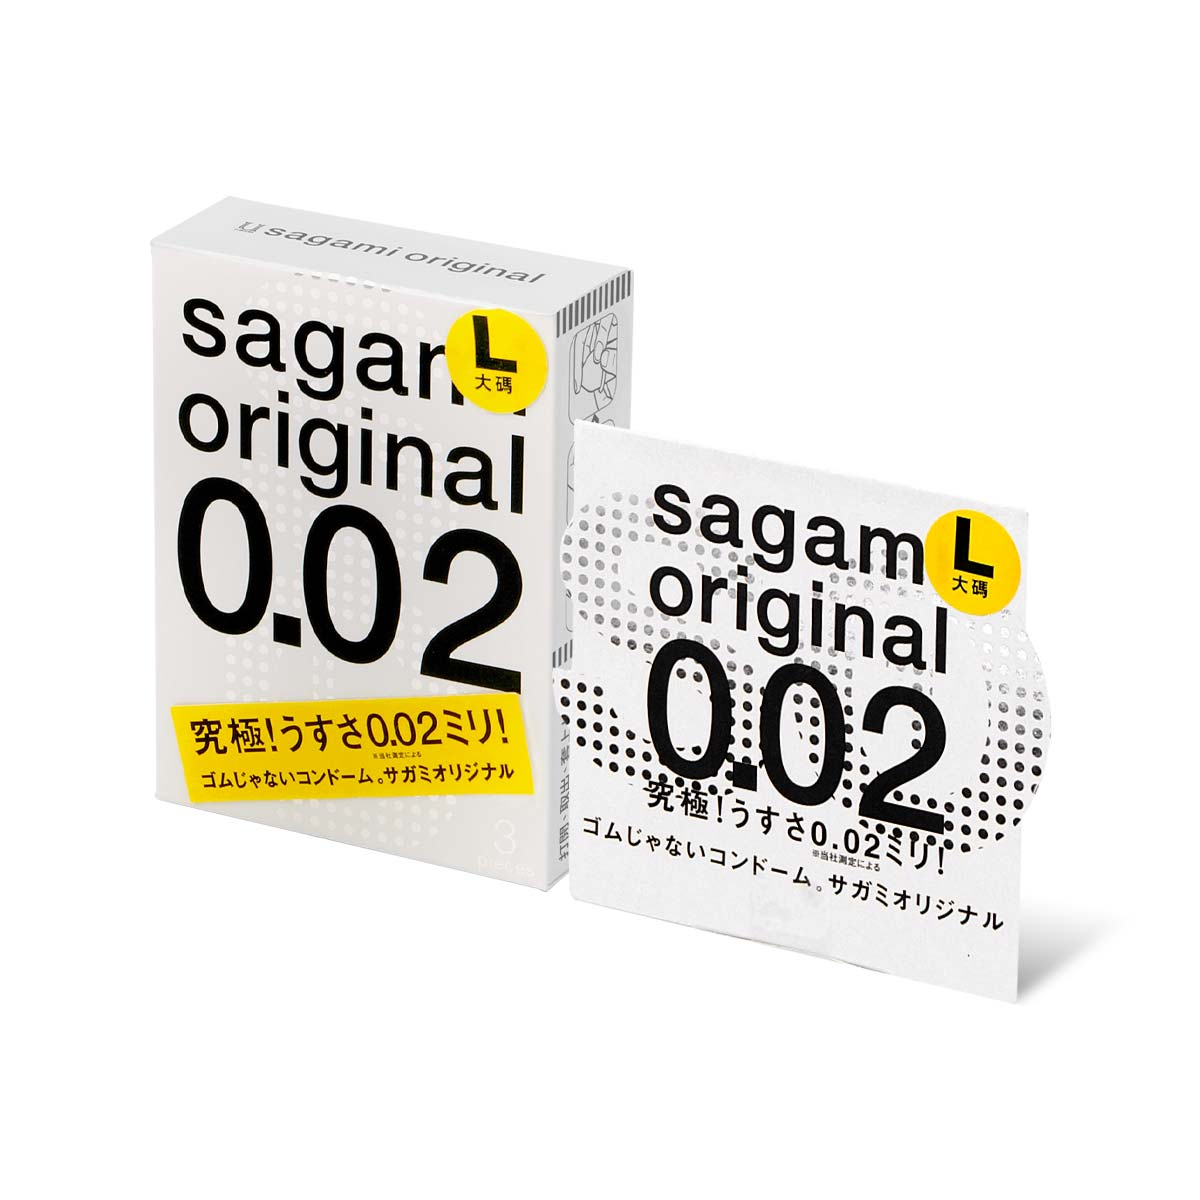 Sagami Original 0.02 L-size 58mm 3+1 Pack PU Condom